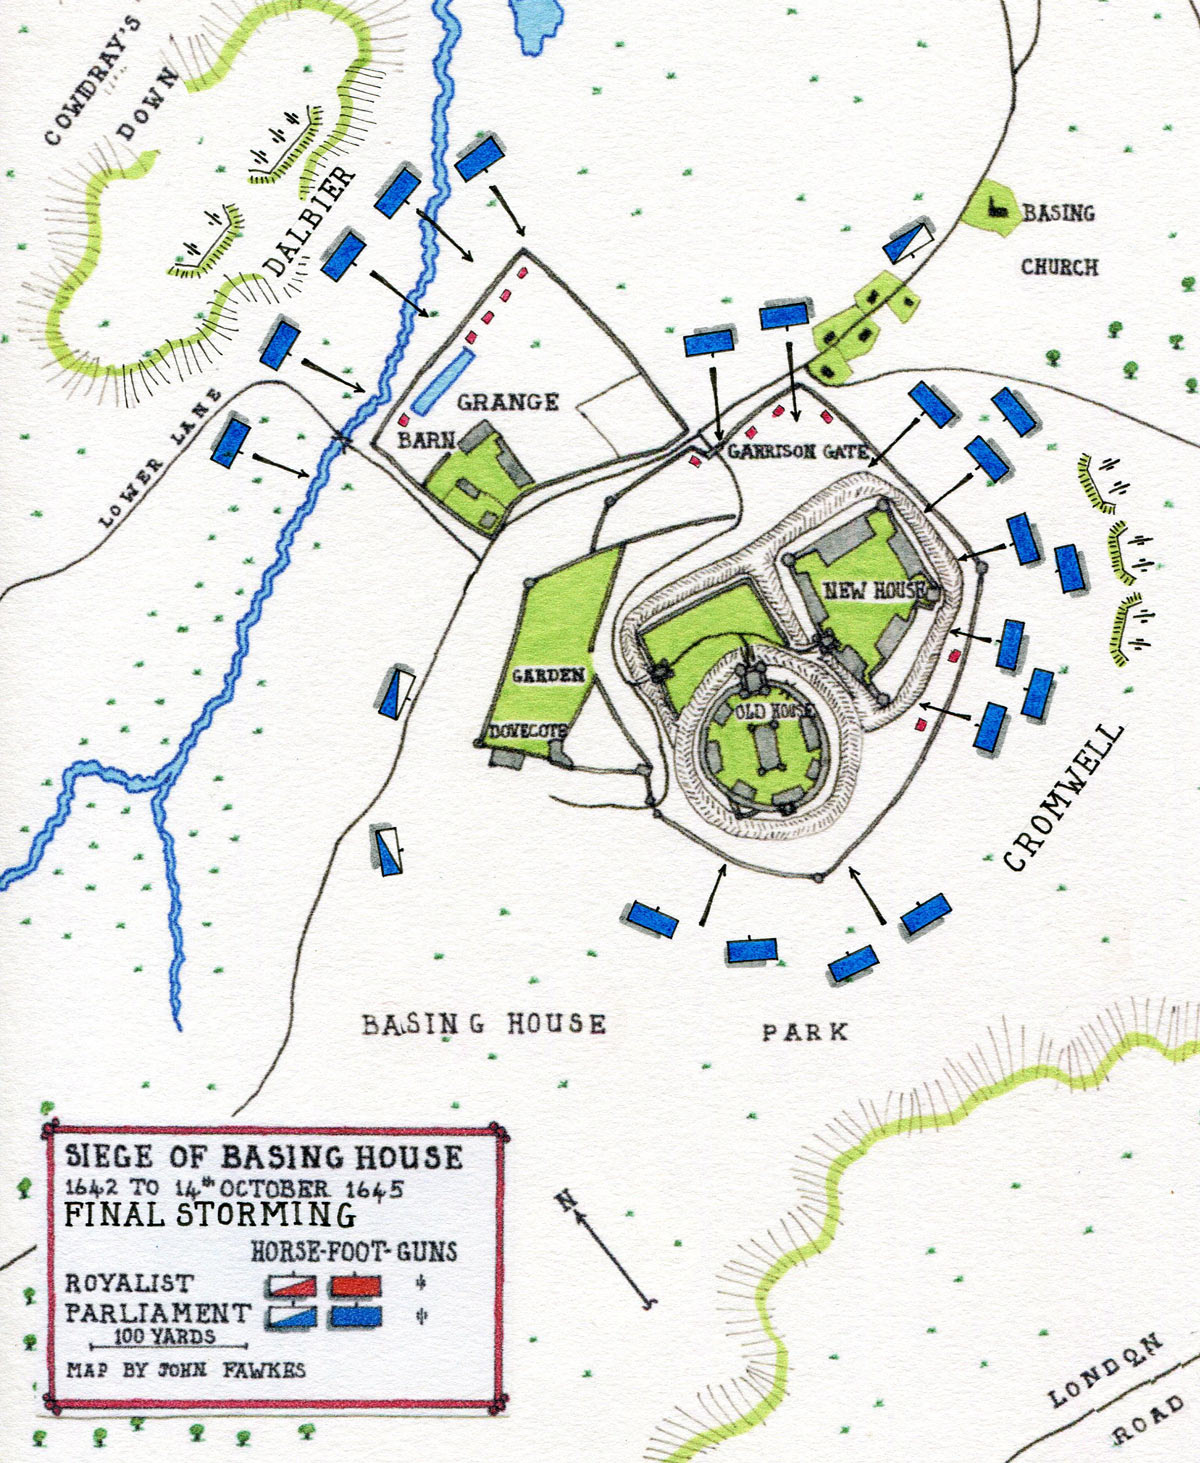 Map of the Final Storming of Basing House on 14th October 1645: Siege of Basing House 1642 to 1645 during the English Civil War: map by John Fawkes